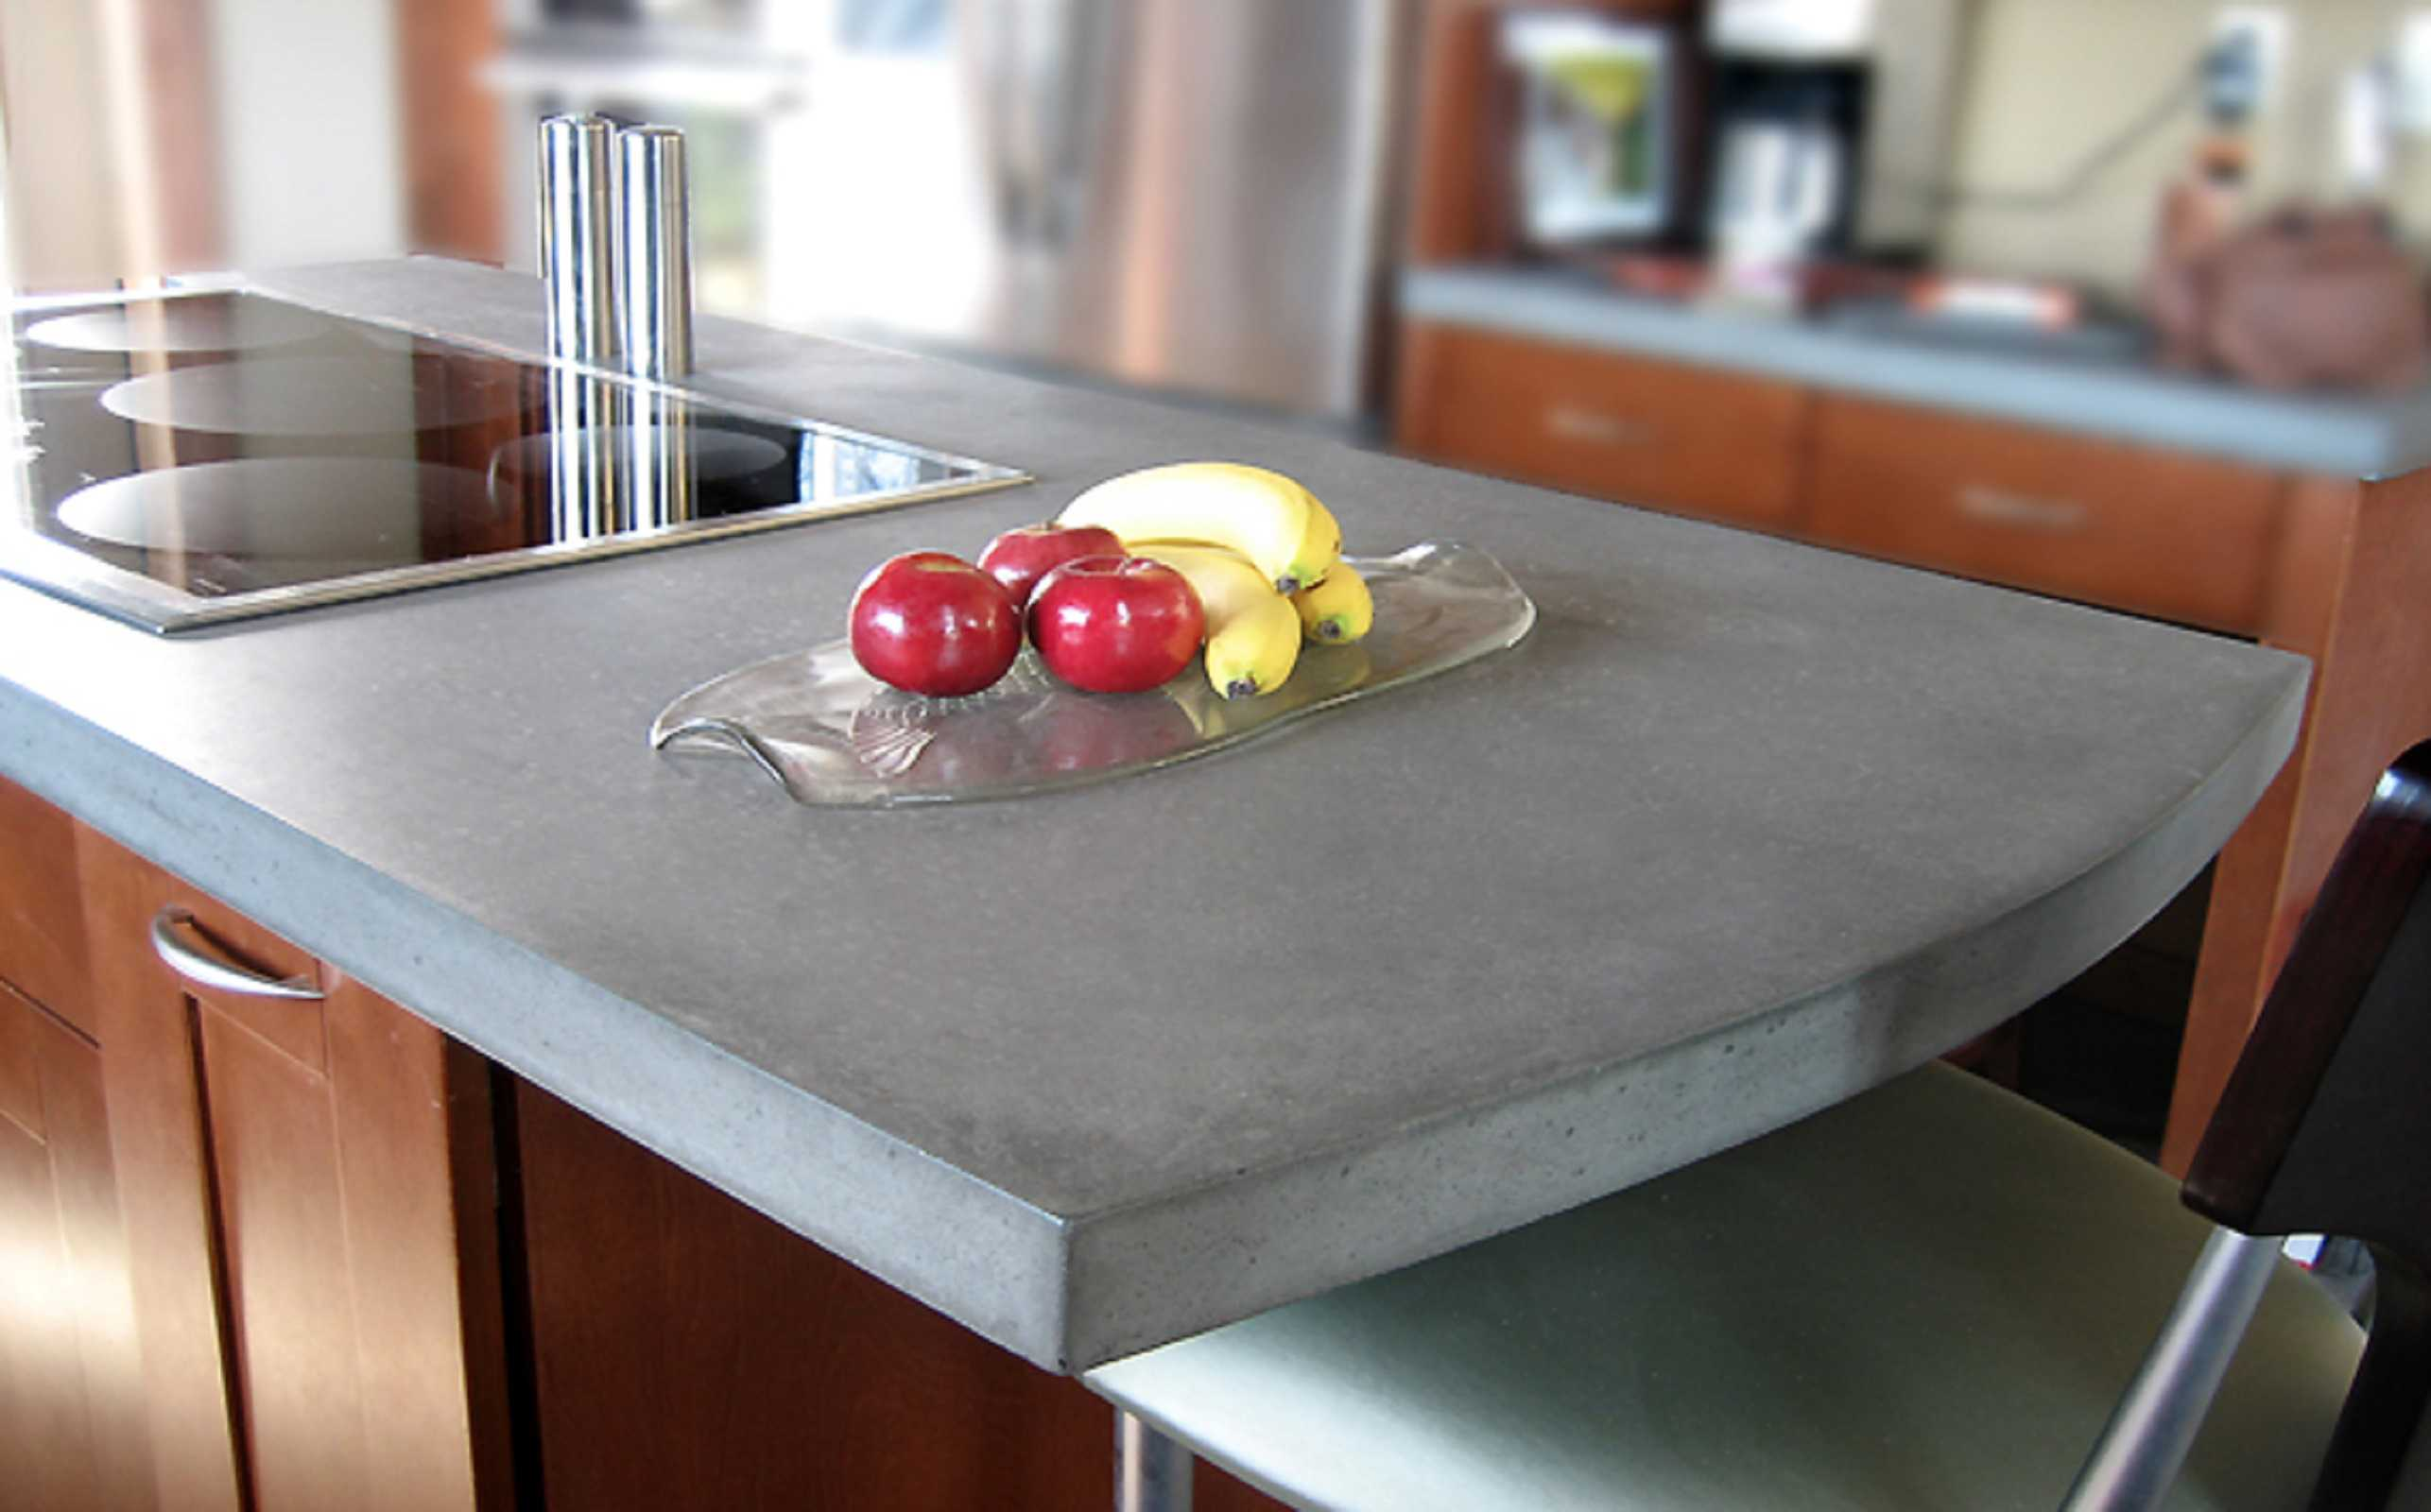 How To Get Stains Off Marble Countertop Cleaning Tips For 6 Types Of Stone Countertops